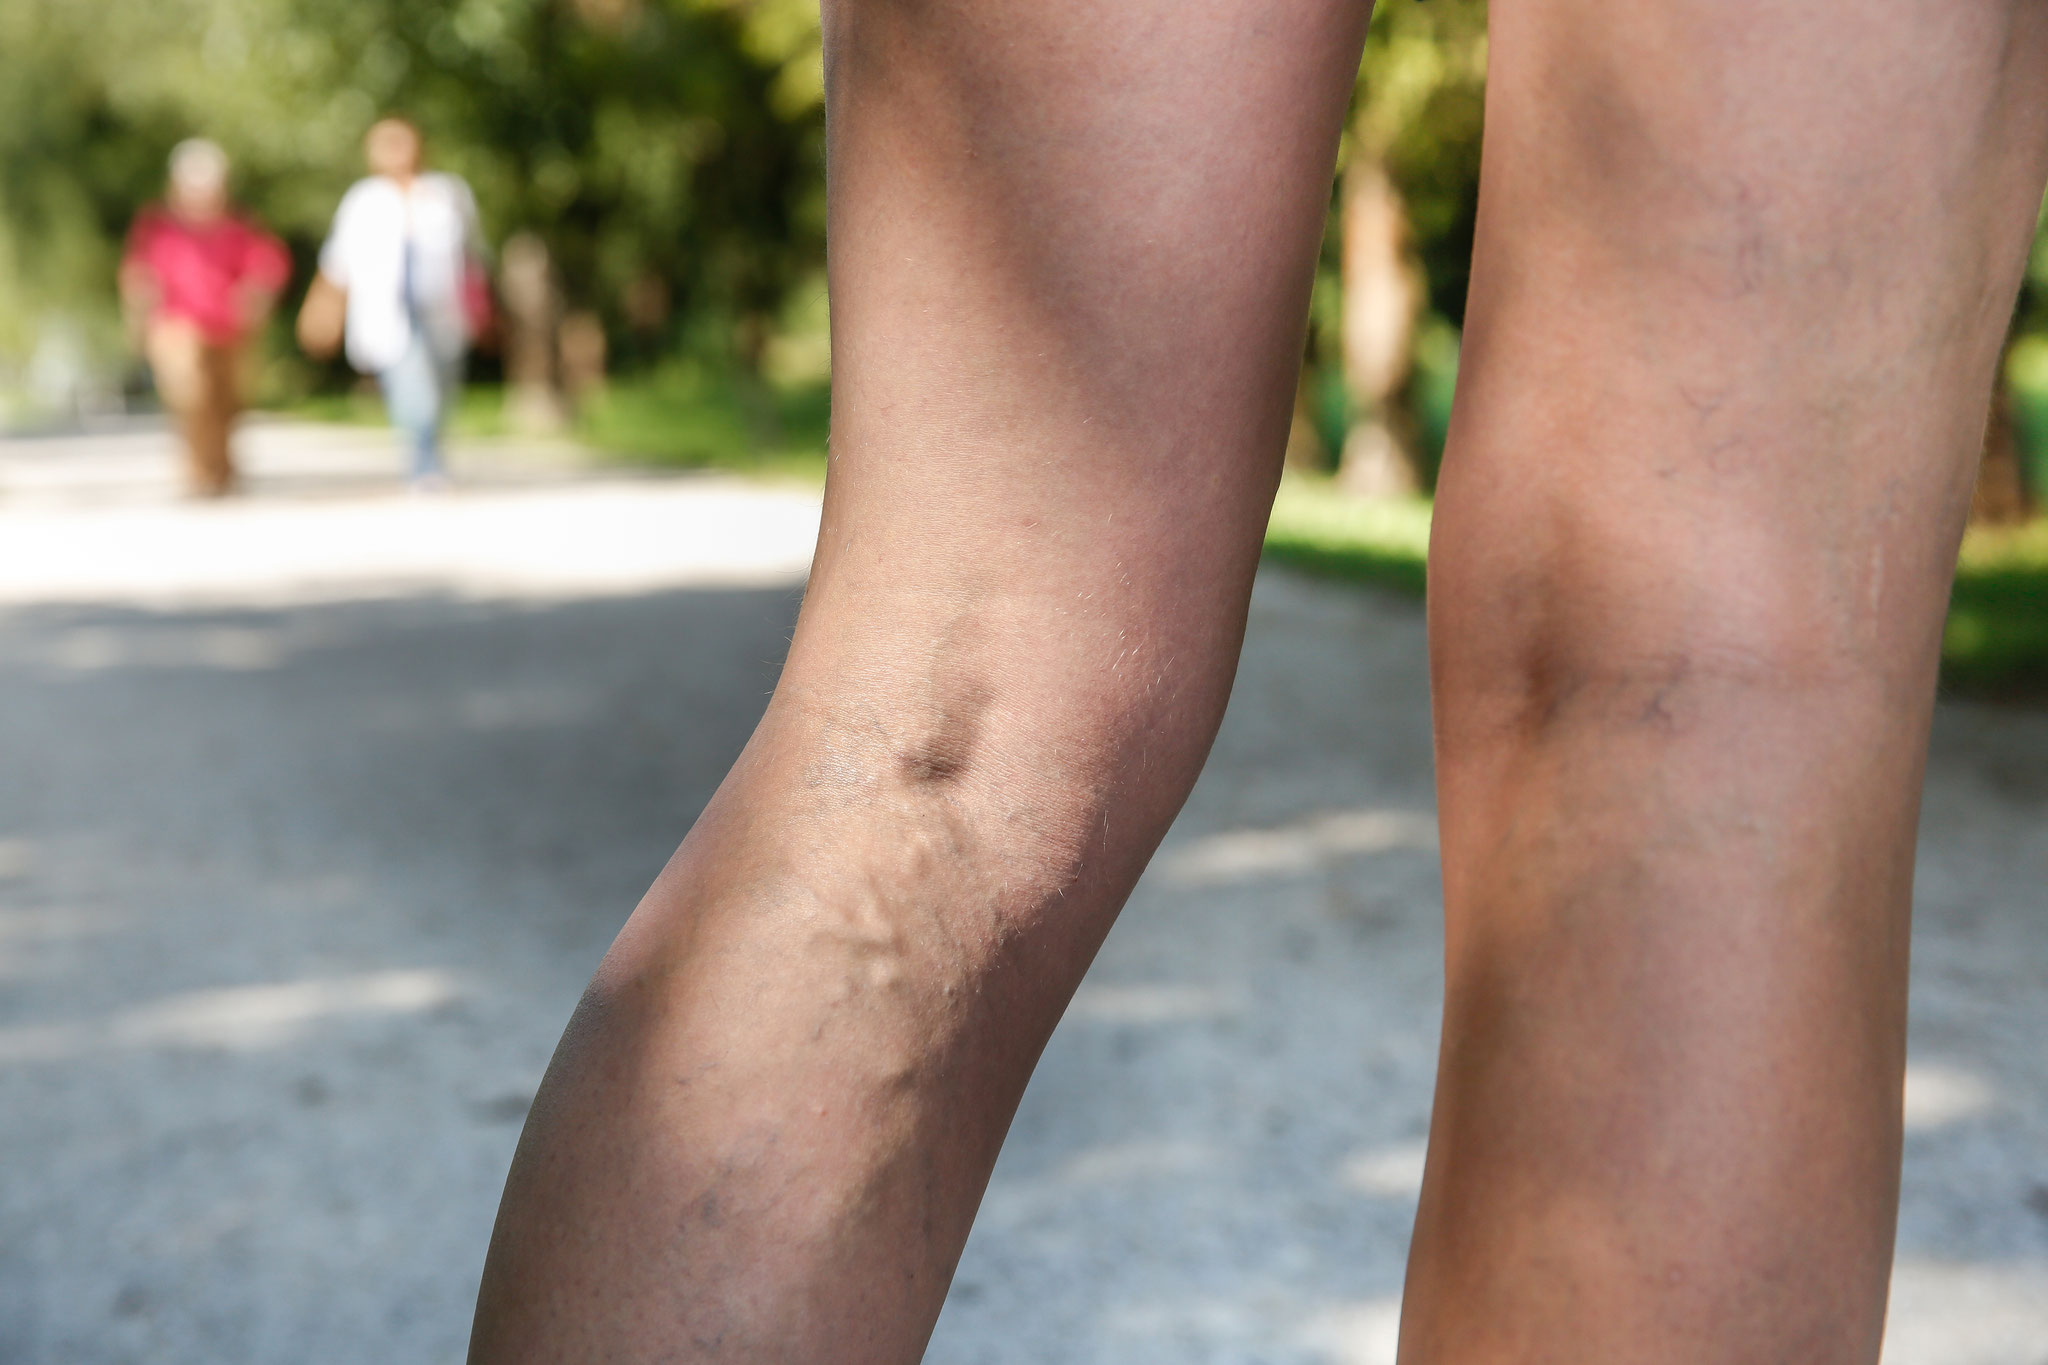 You are living with painful varicose veins.